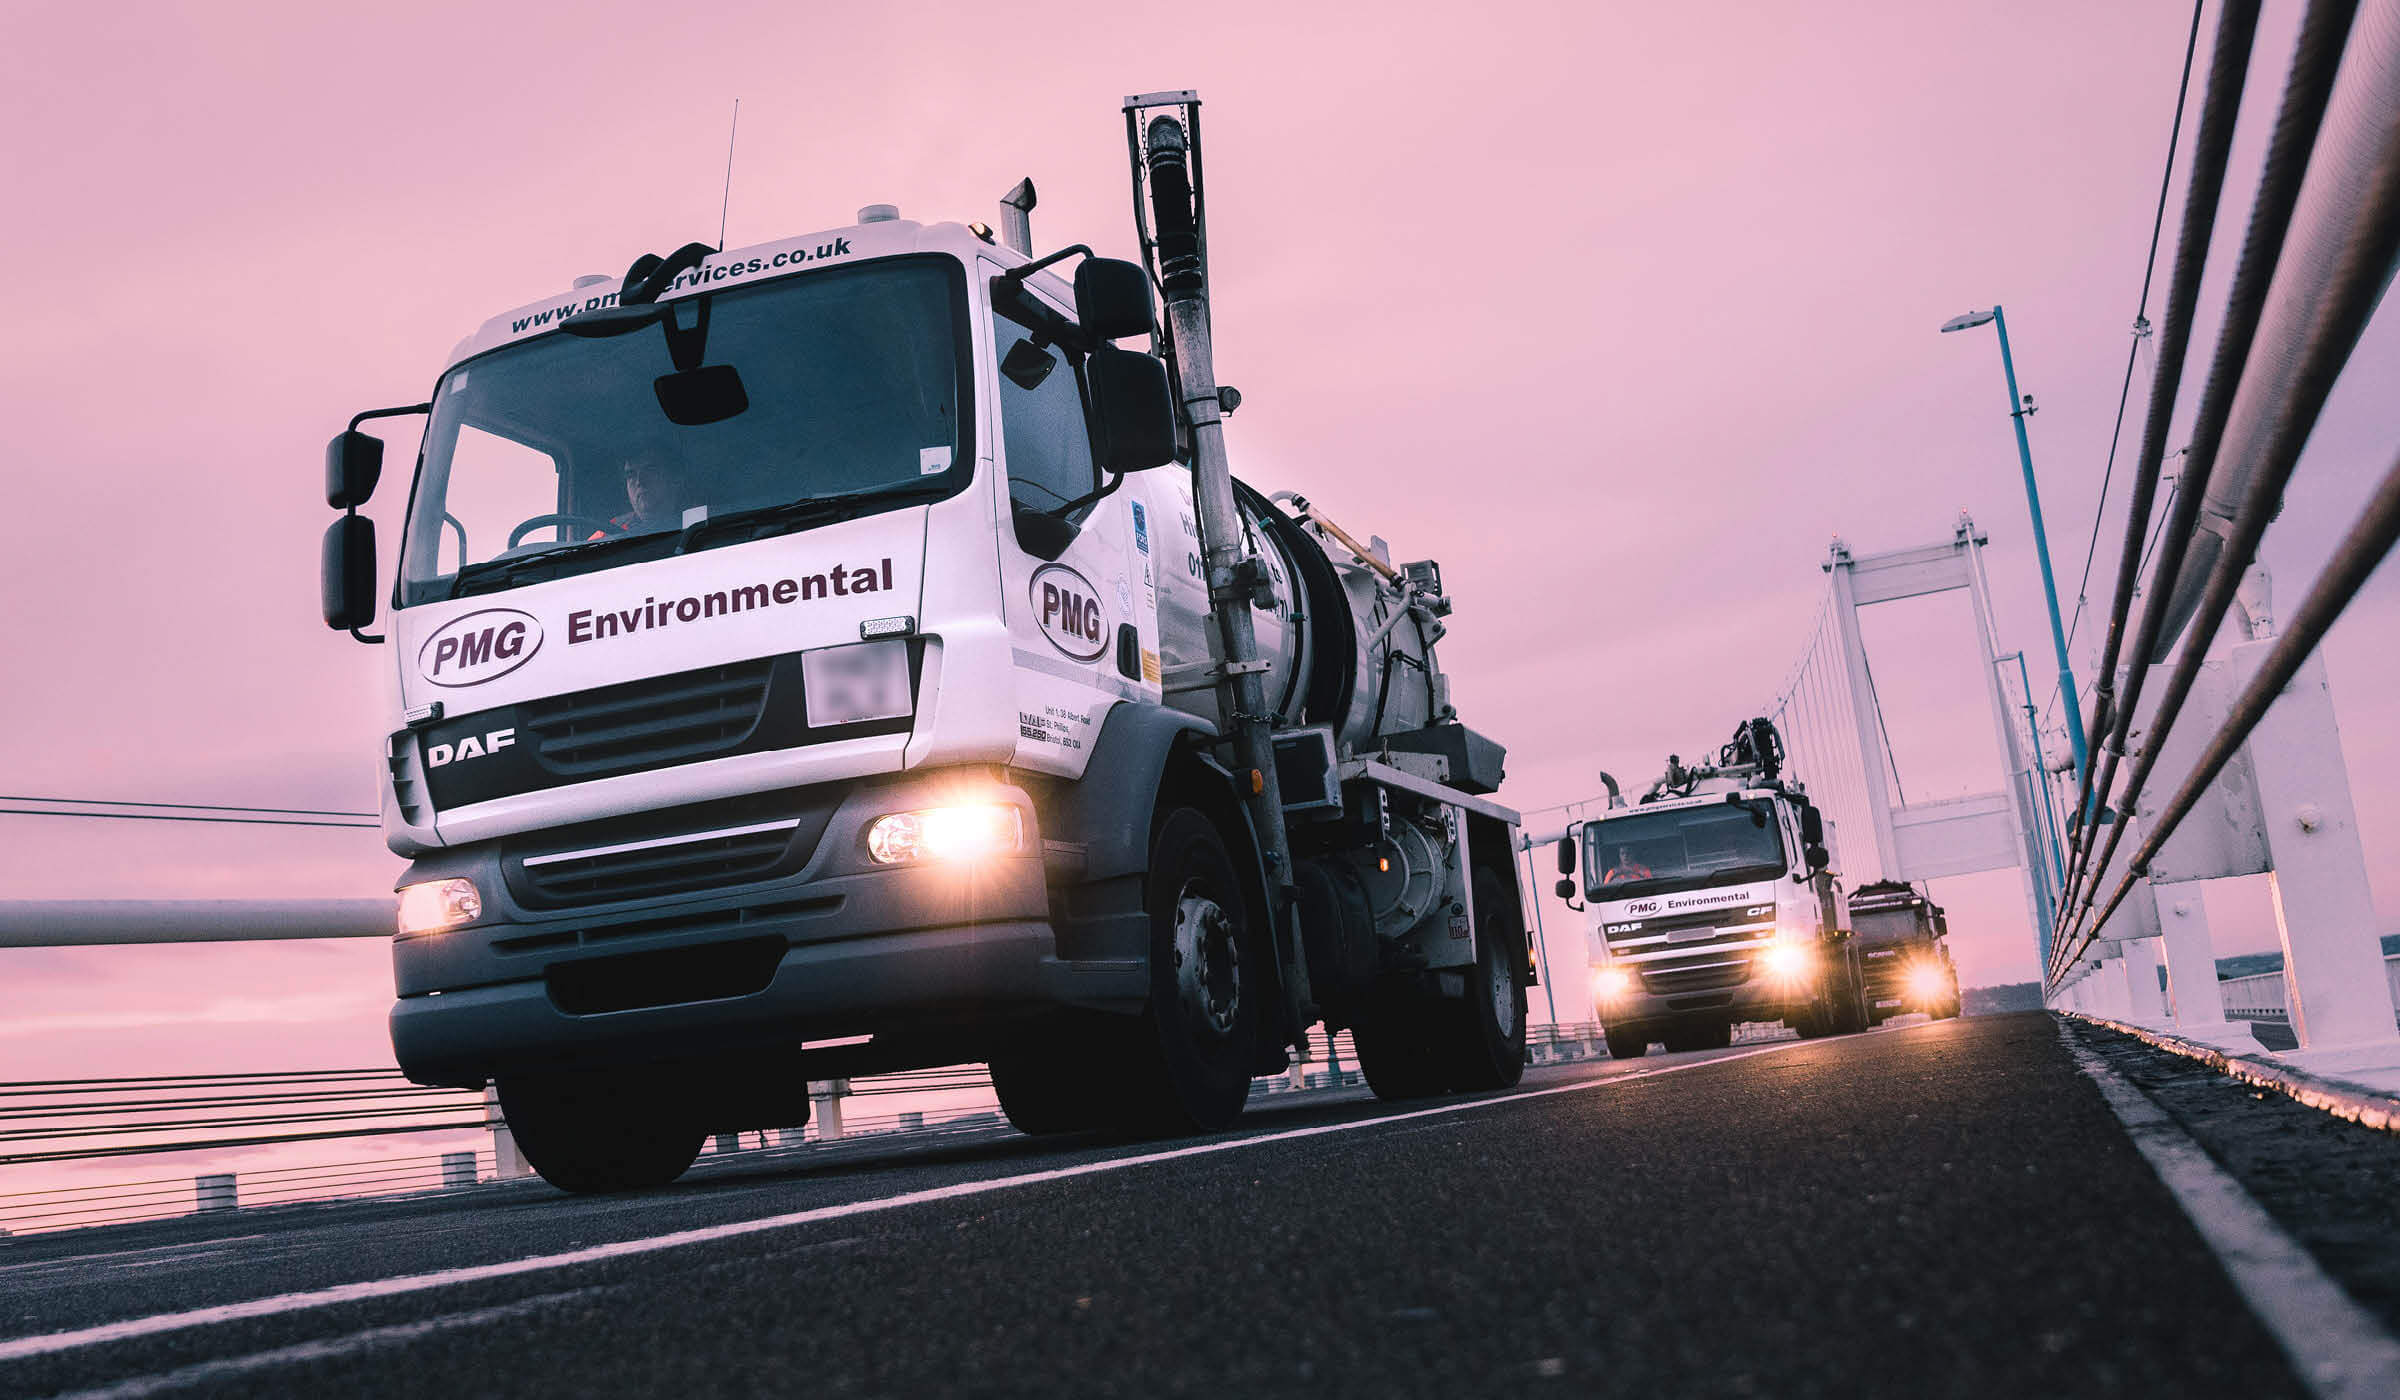 photograph of Bristol based road sweepers on Severn Bridge